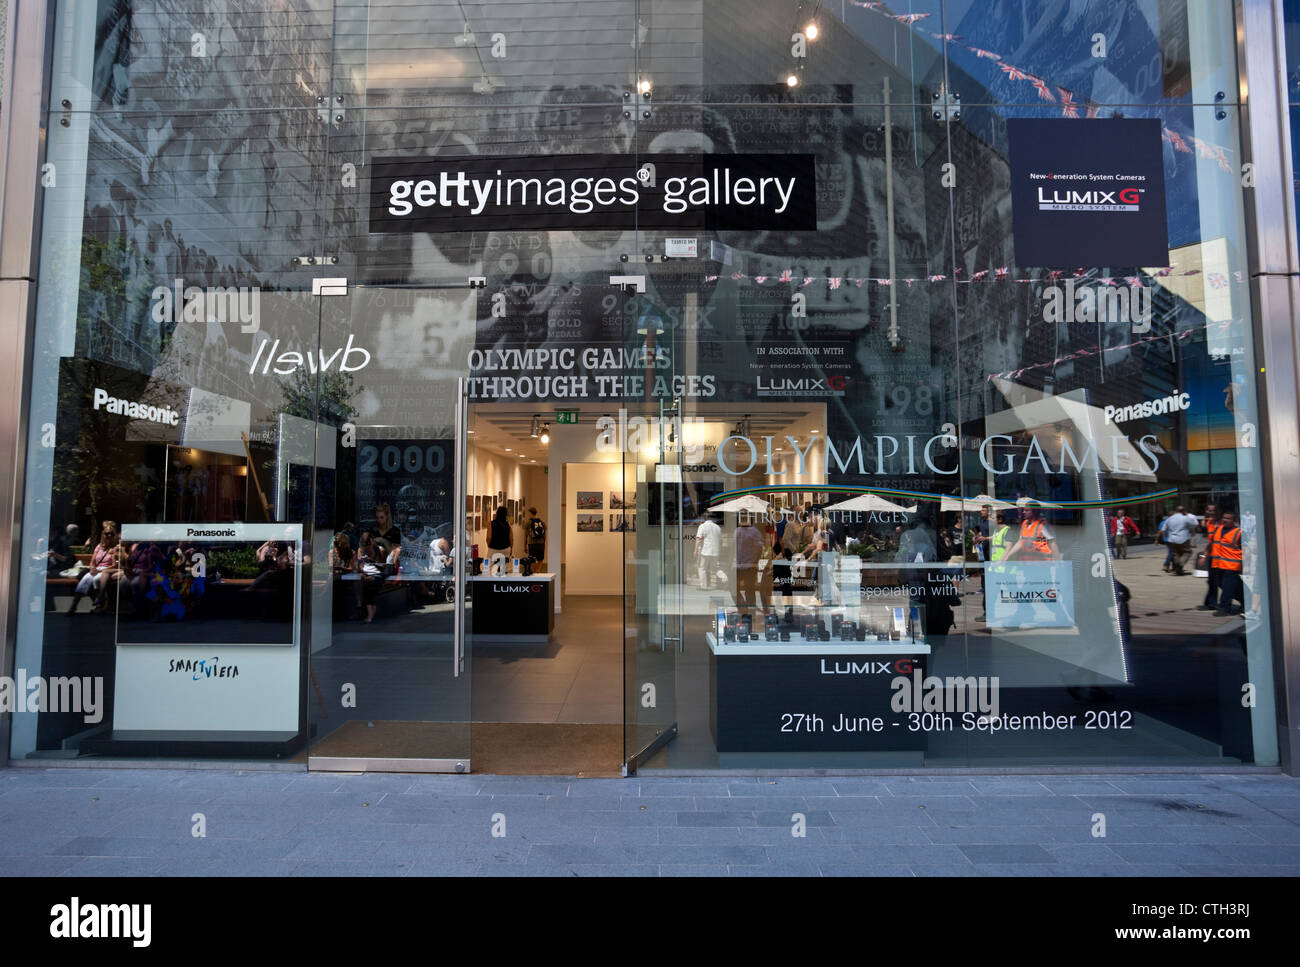 Getty Images Gallery, Olympic Games Through The Ages exhibition, Westfield Stratford City Shopping Centre, London, - Stock Image